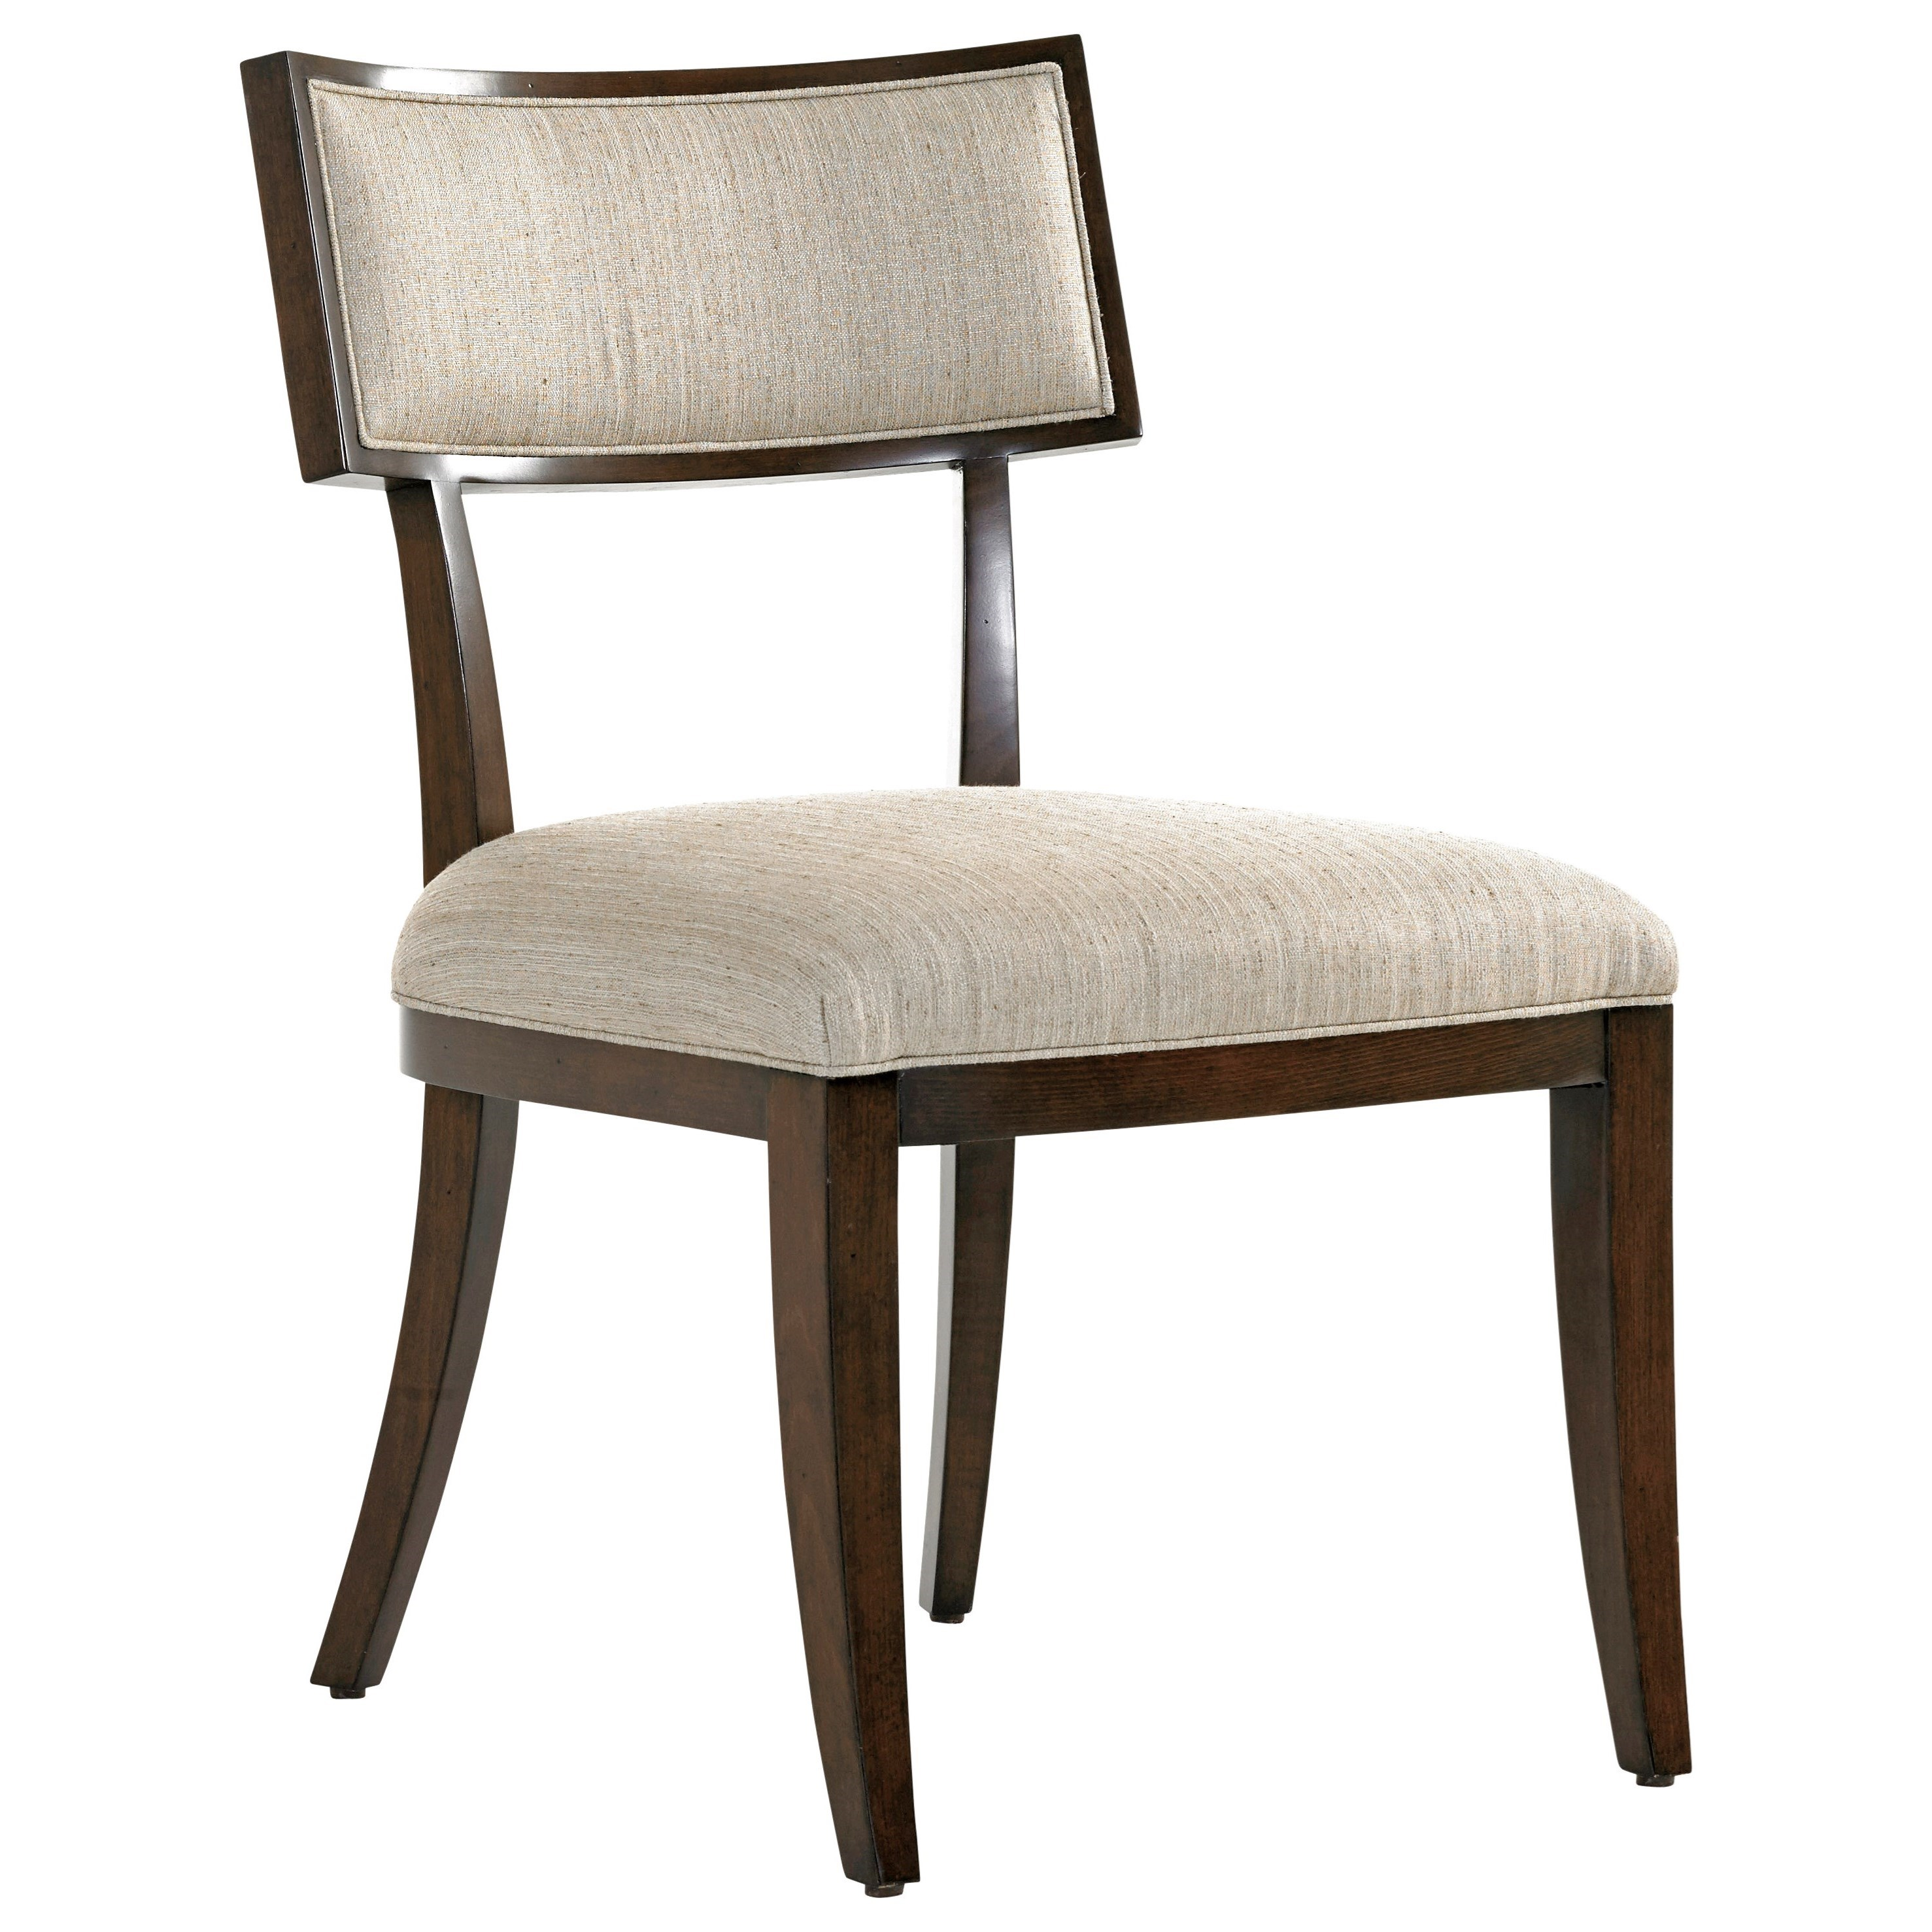 Whittier Side Chair in Wheat Fabric